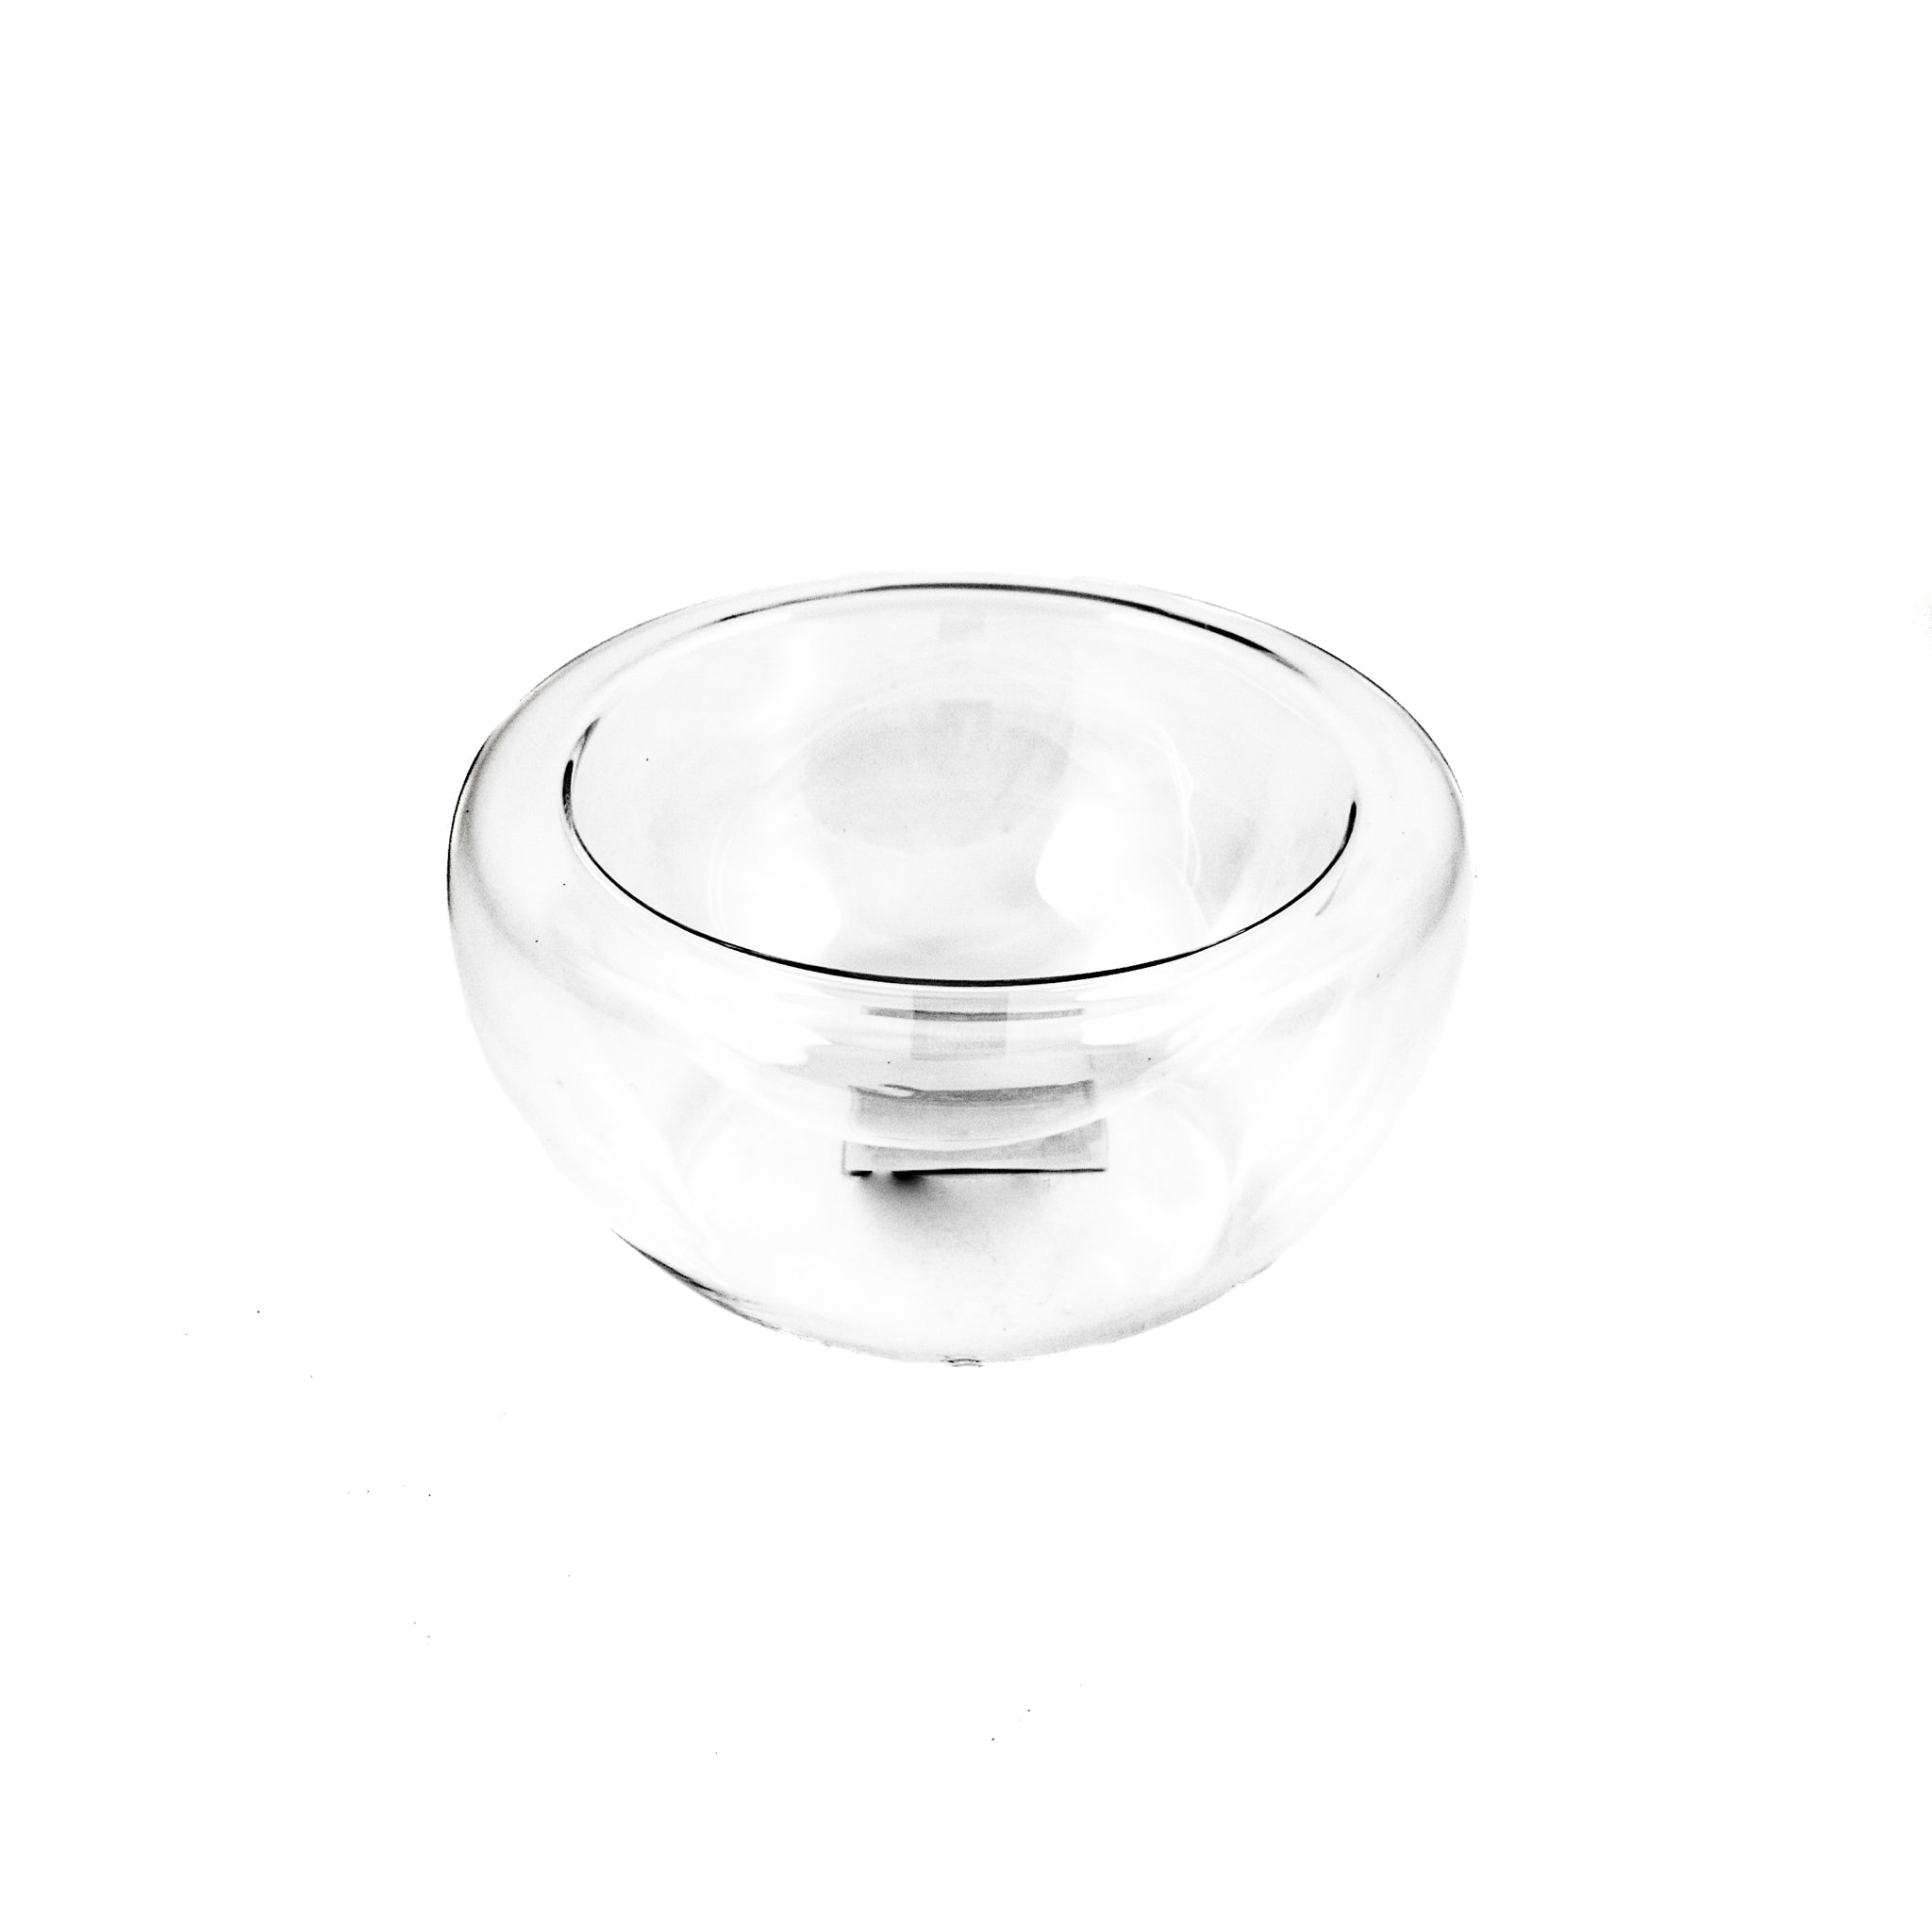 Portuguese Tableware Small Double Wall Glass Bowl x 6 120ml Tableware Jugs & Glassware